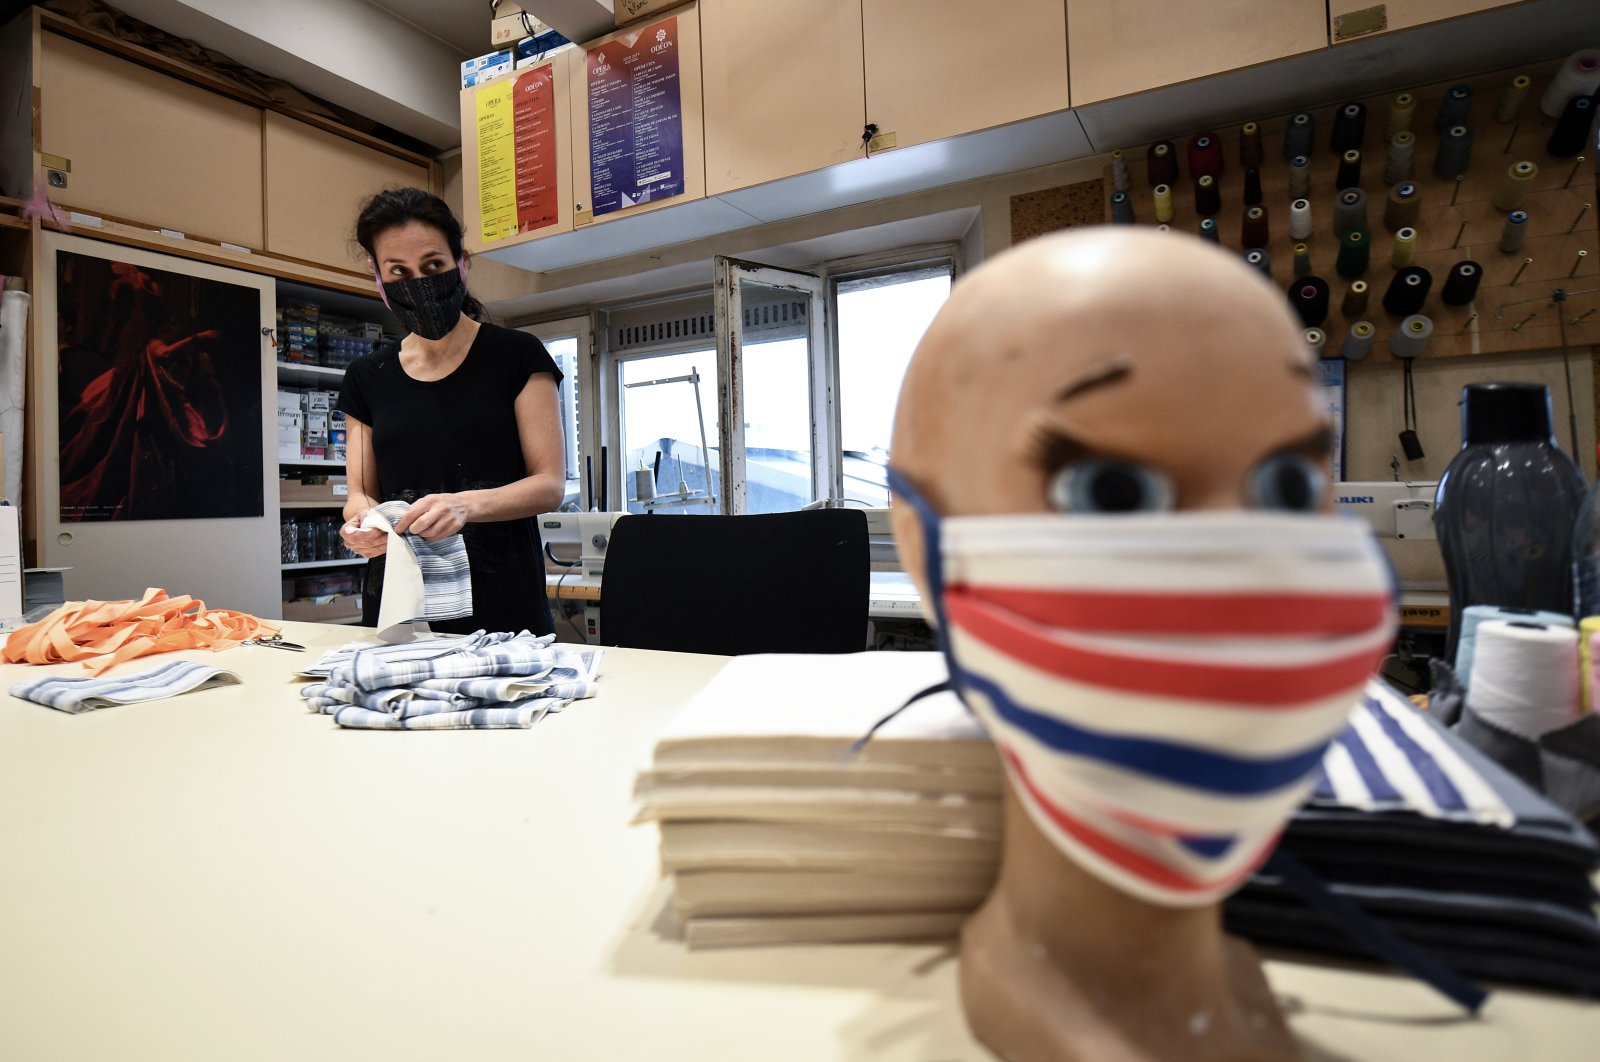 A seamstress from the Opera de Marseille makes face masks out of fabric in the sewing workshop of the Marseille opera house, April 20, 2020, in Marseille, southeastern France. (AFP Photo)